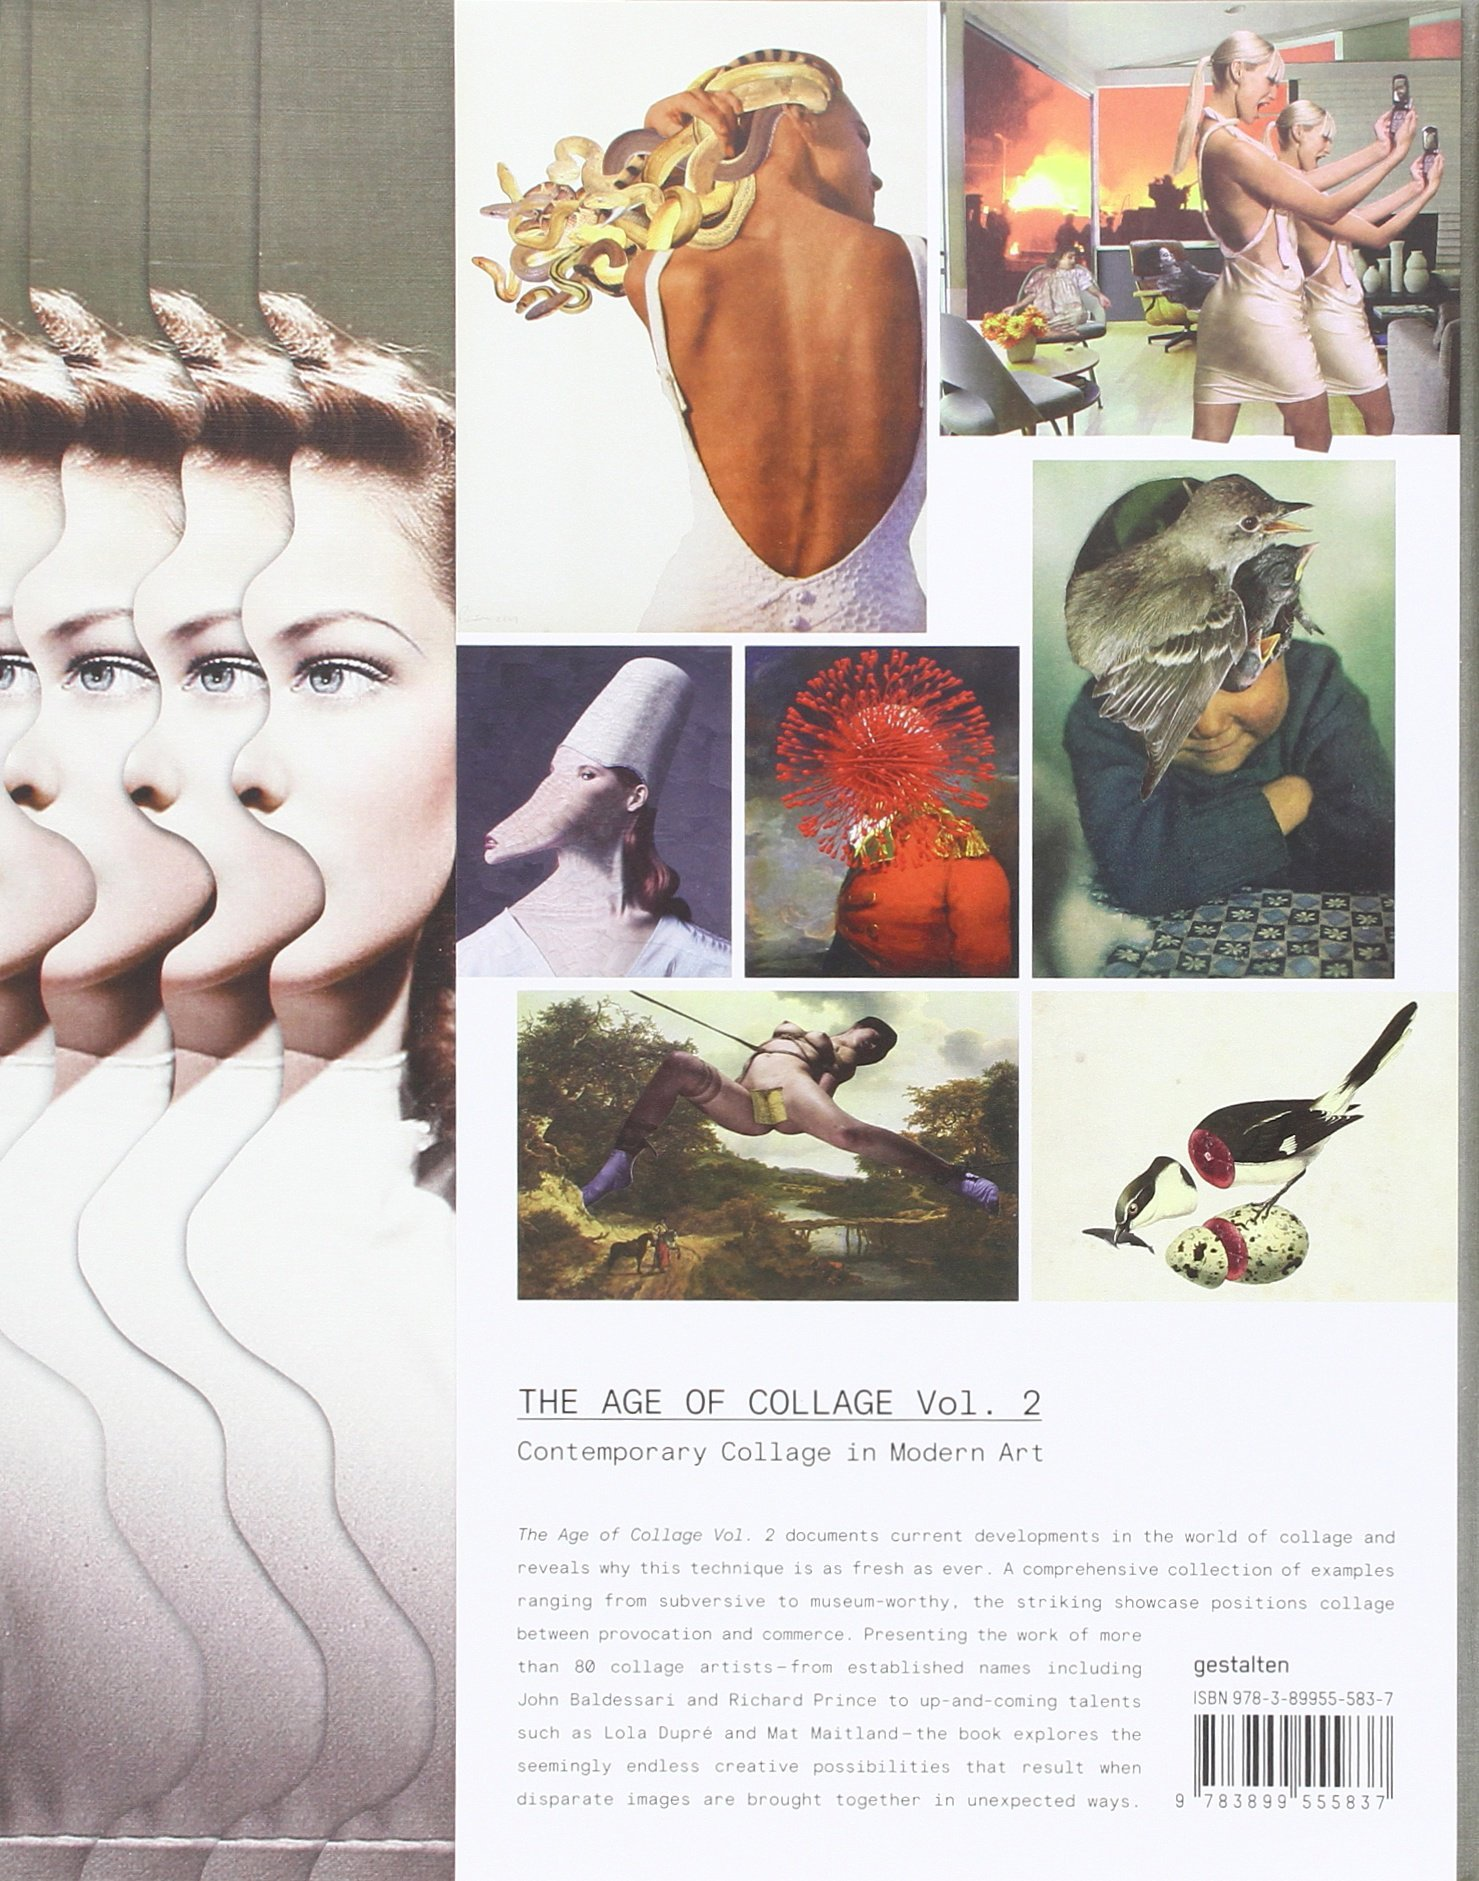 The Age of Collage Vol. 2: Contemporary Collage in Modern Art by Gestalten